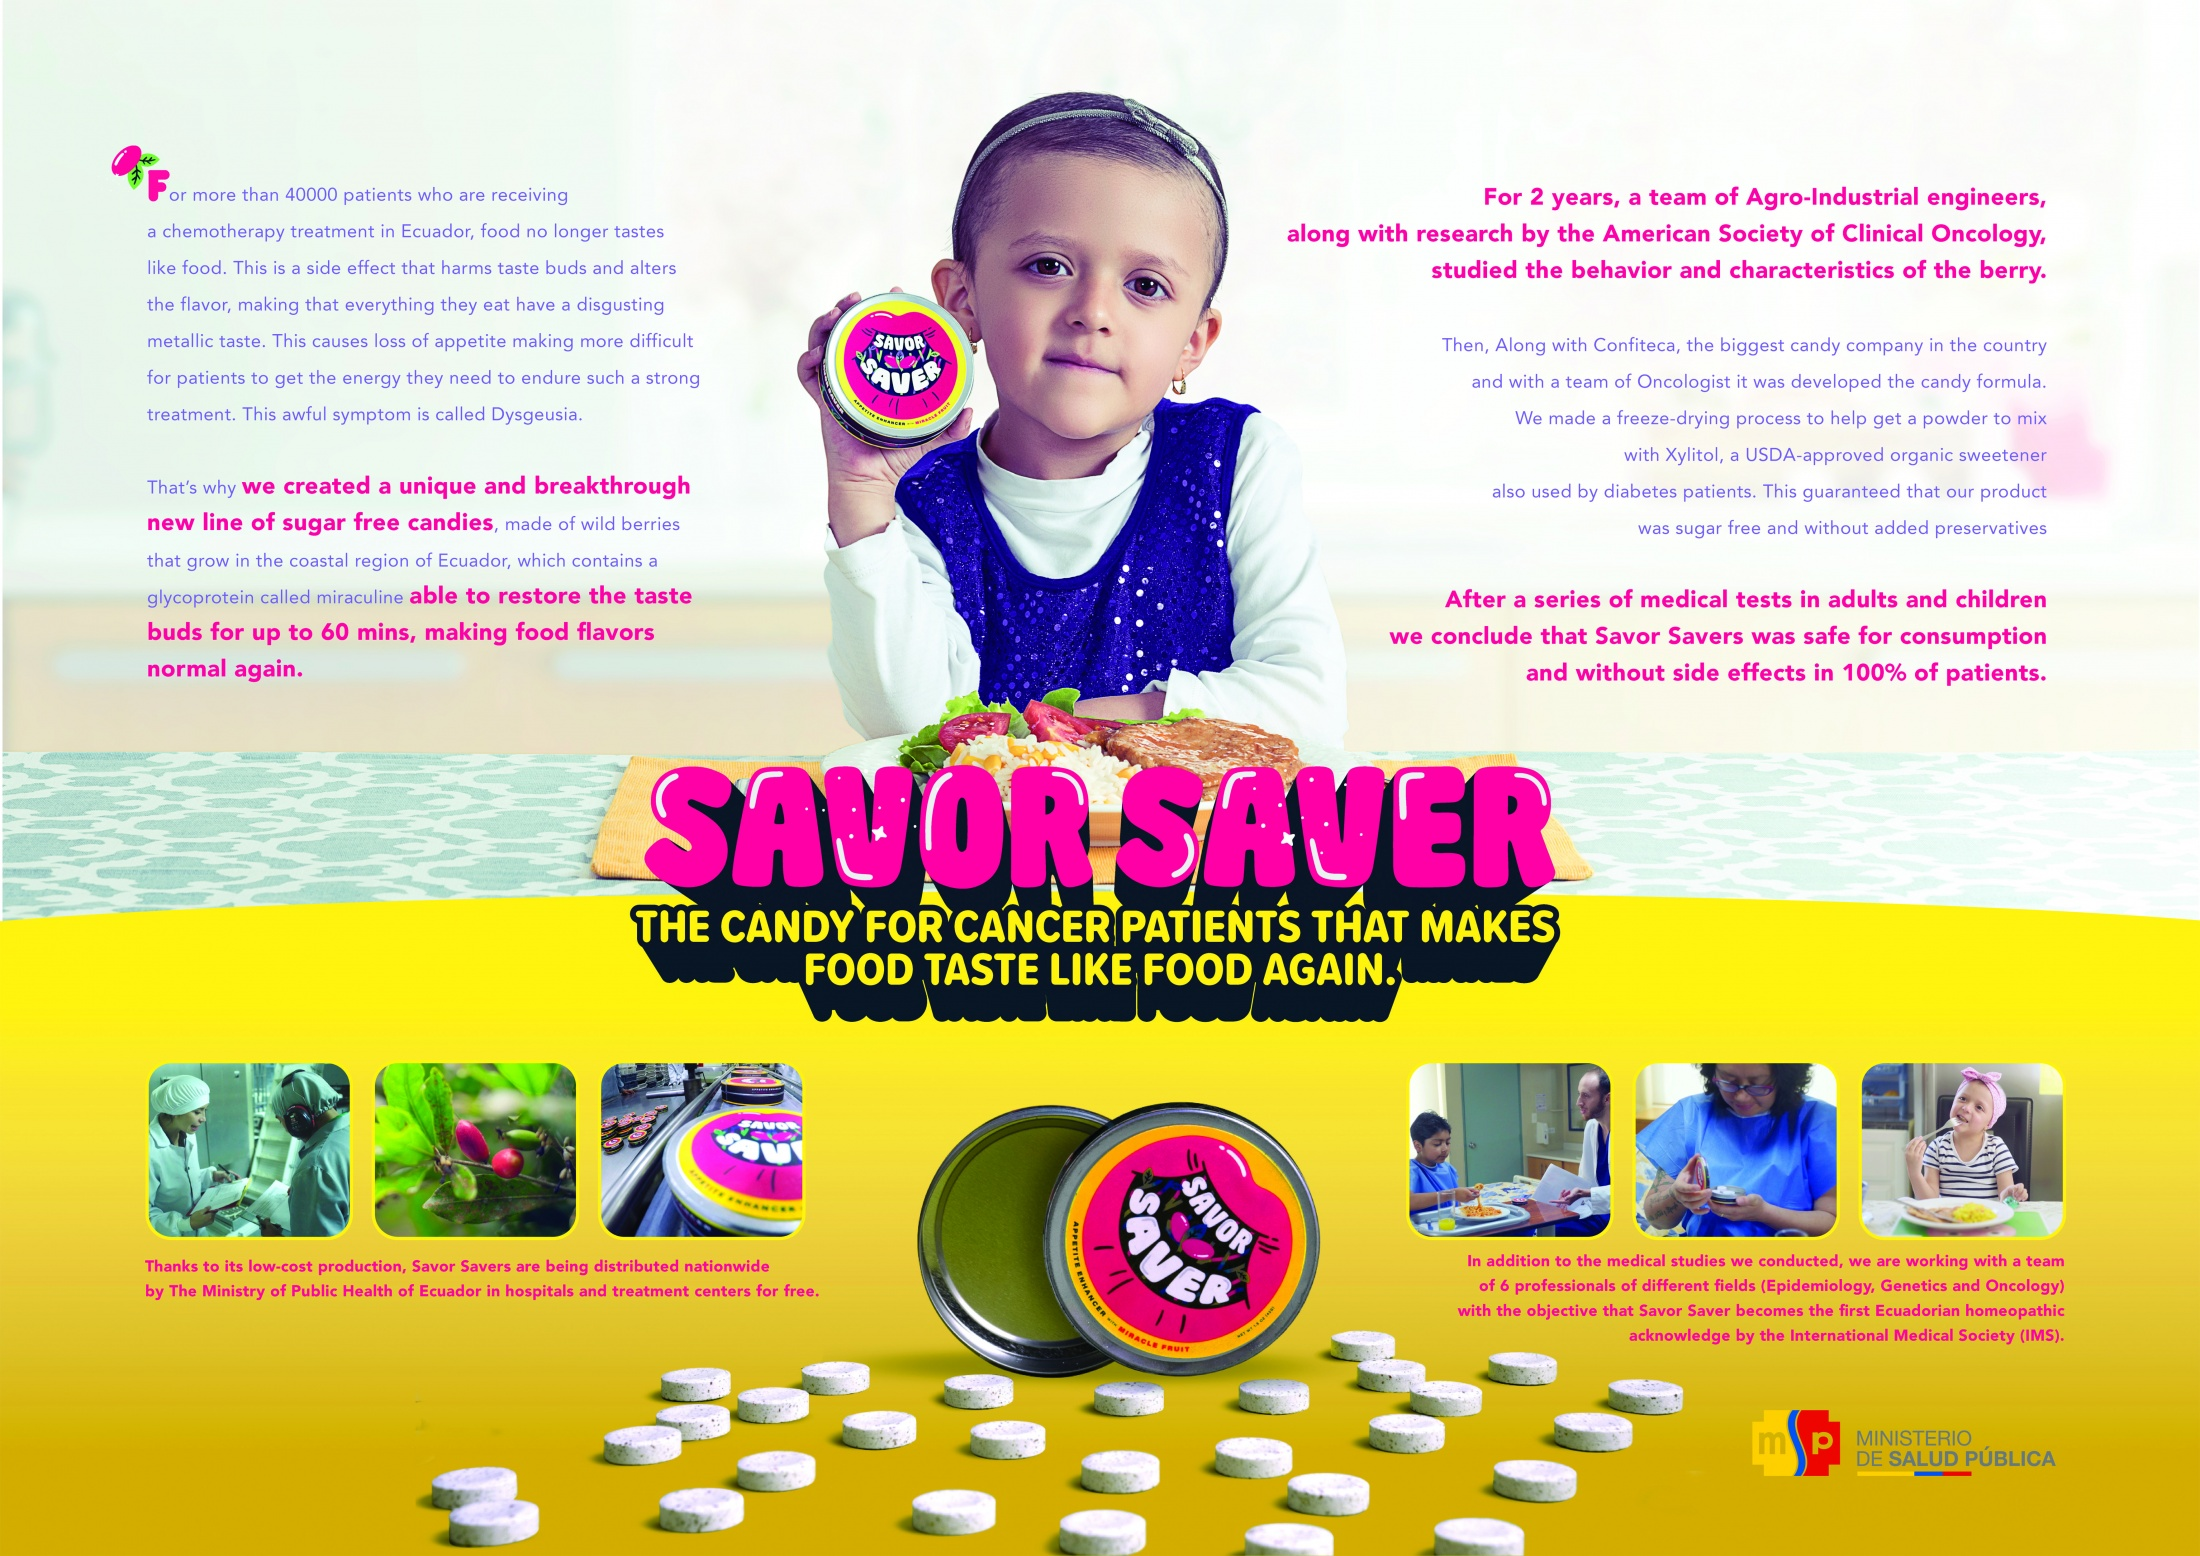 Image Media for Savor Saver